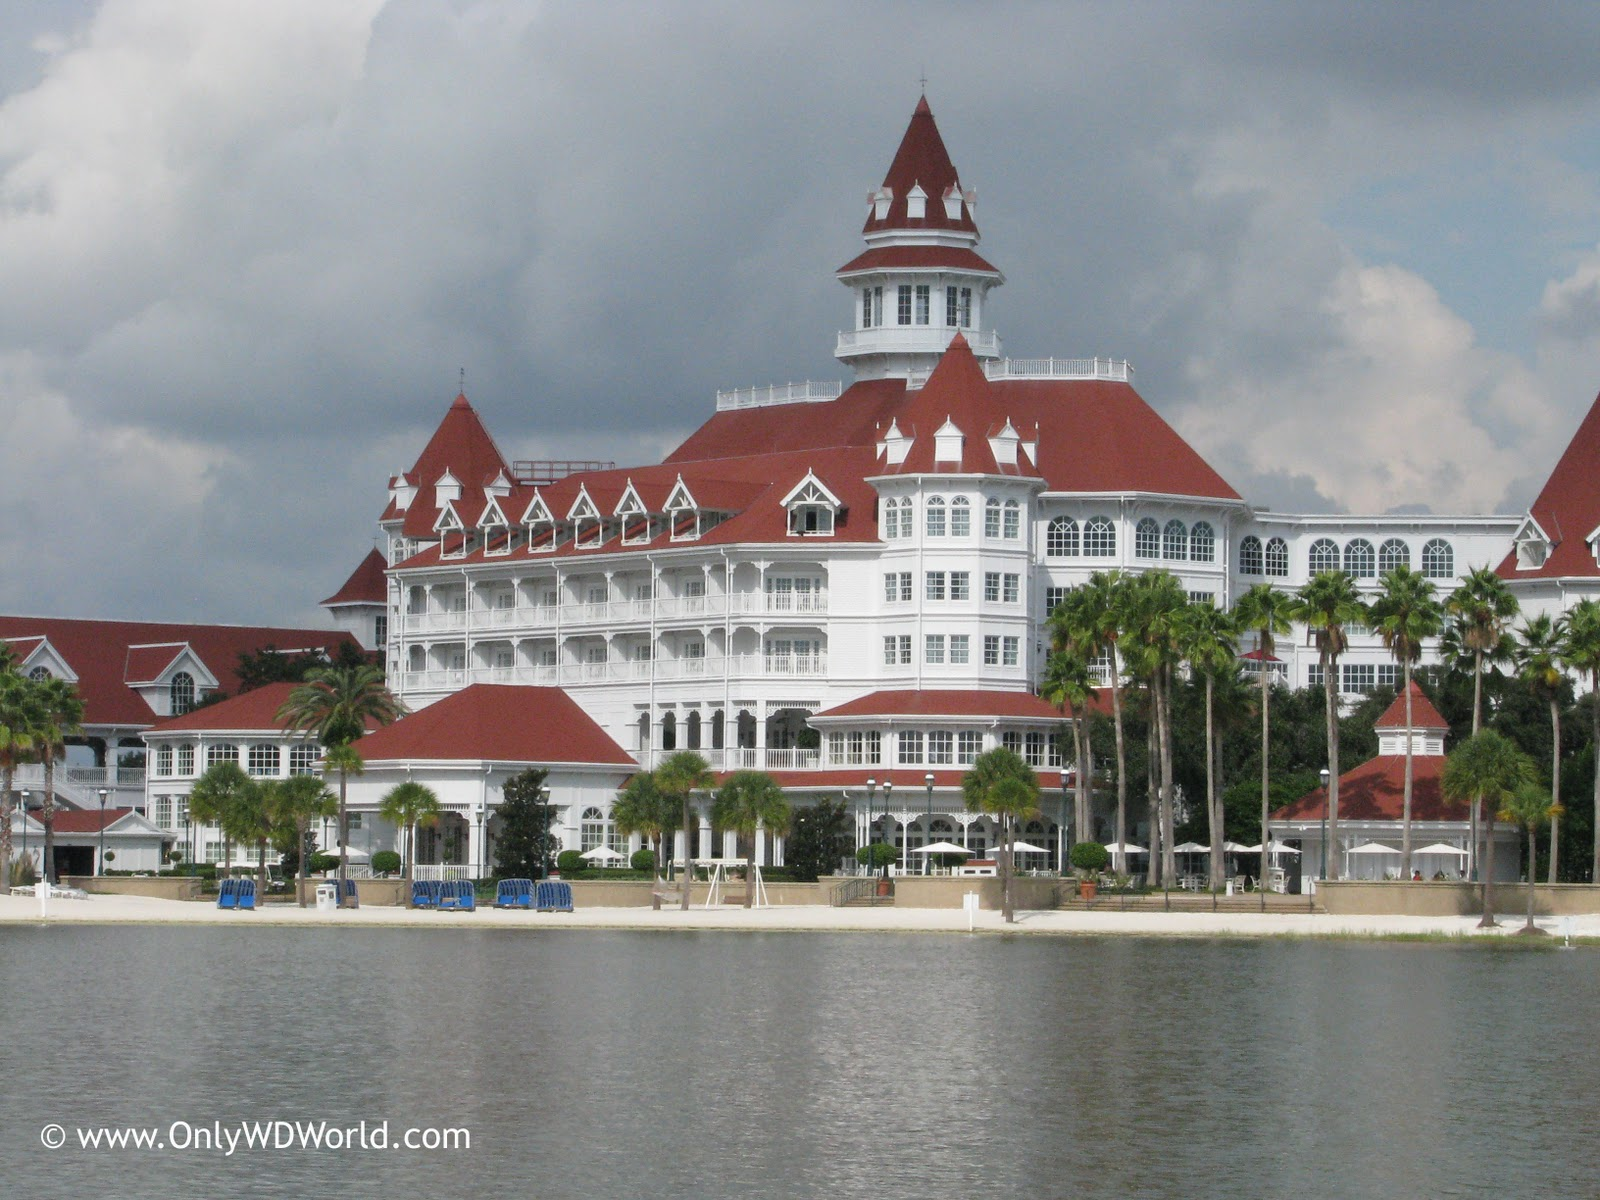 Disney world hotels choosing the right one for your vacation disney world hotels choosing the right one for your vacation publicscrutiny Images